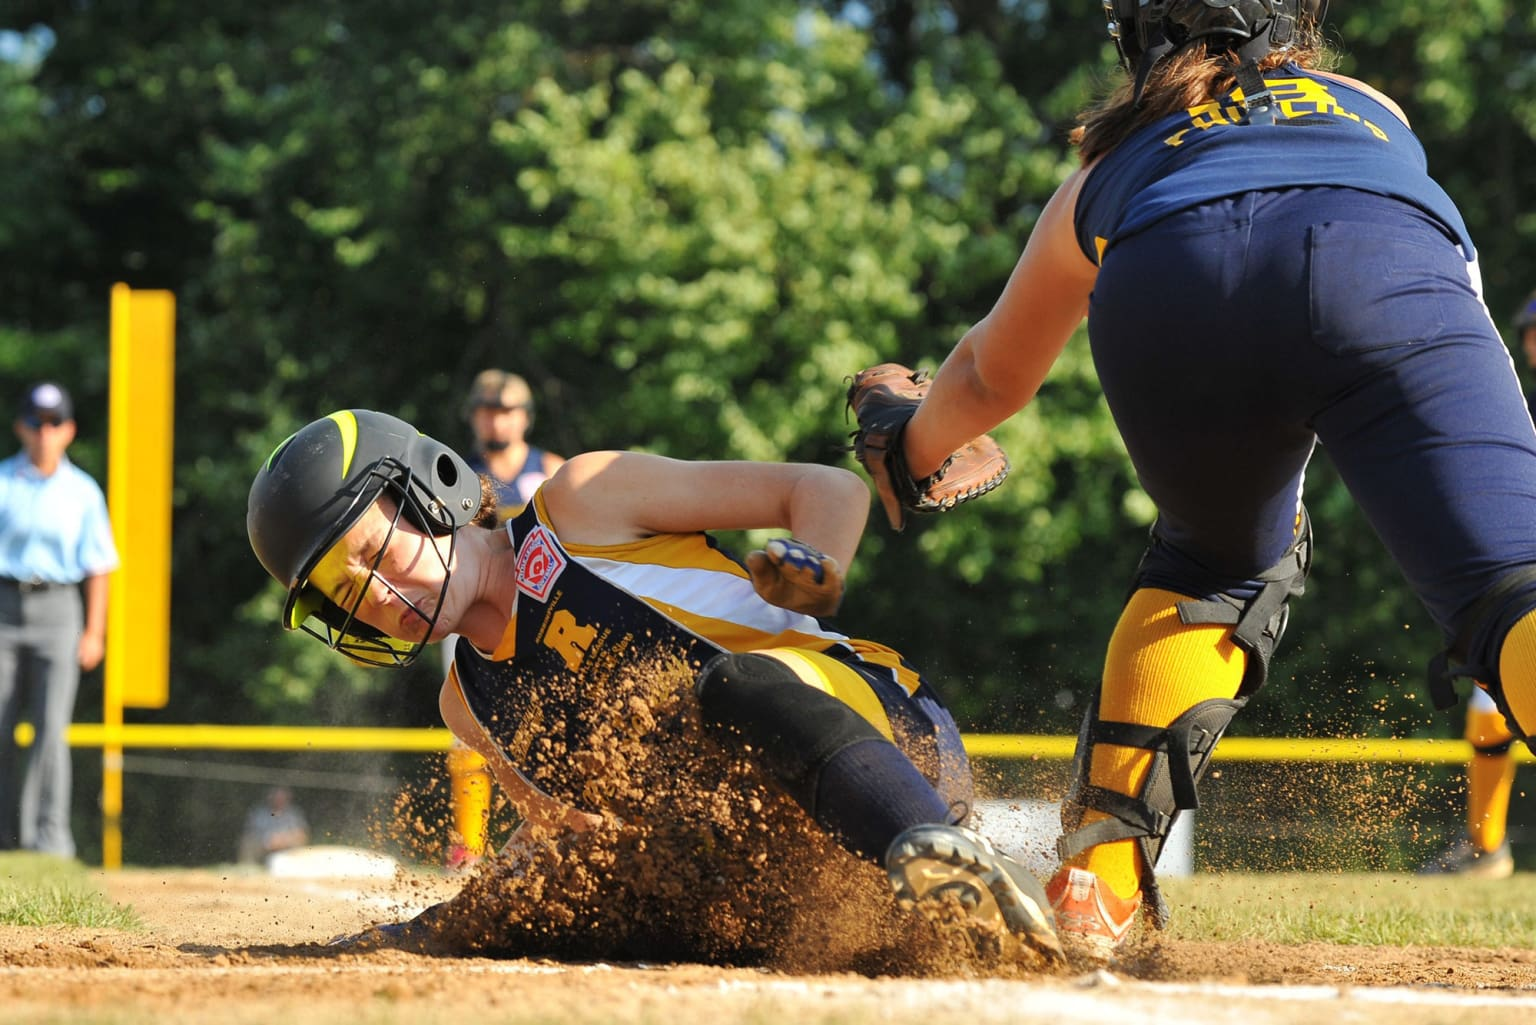 Hey, Blue! - That Player Has to Slide! - Little League